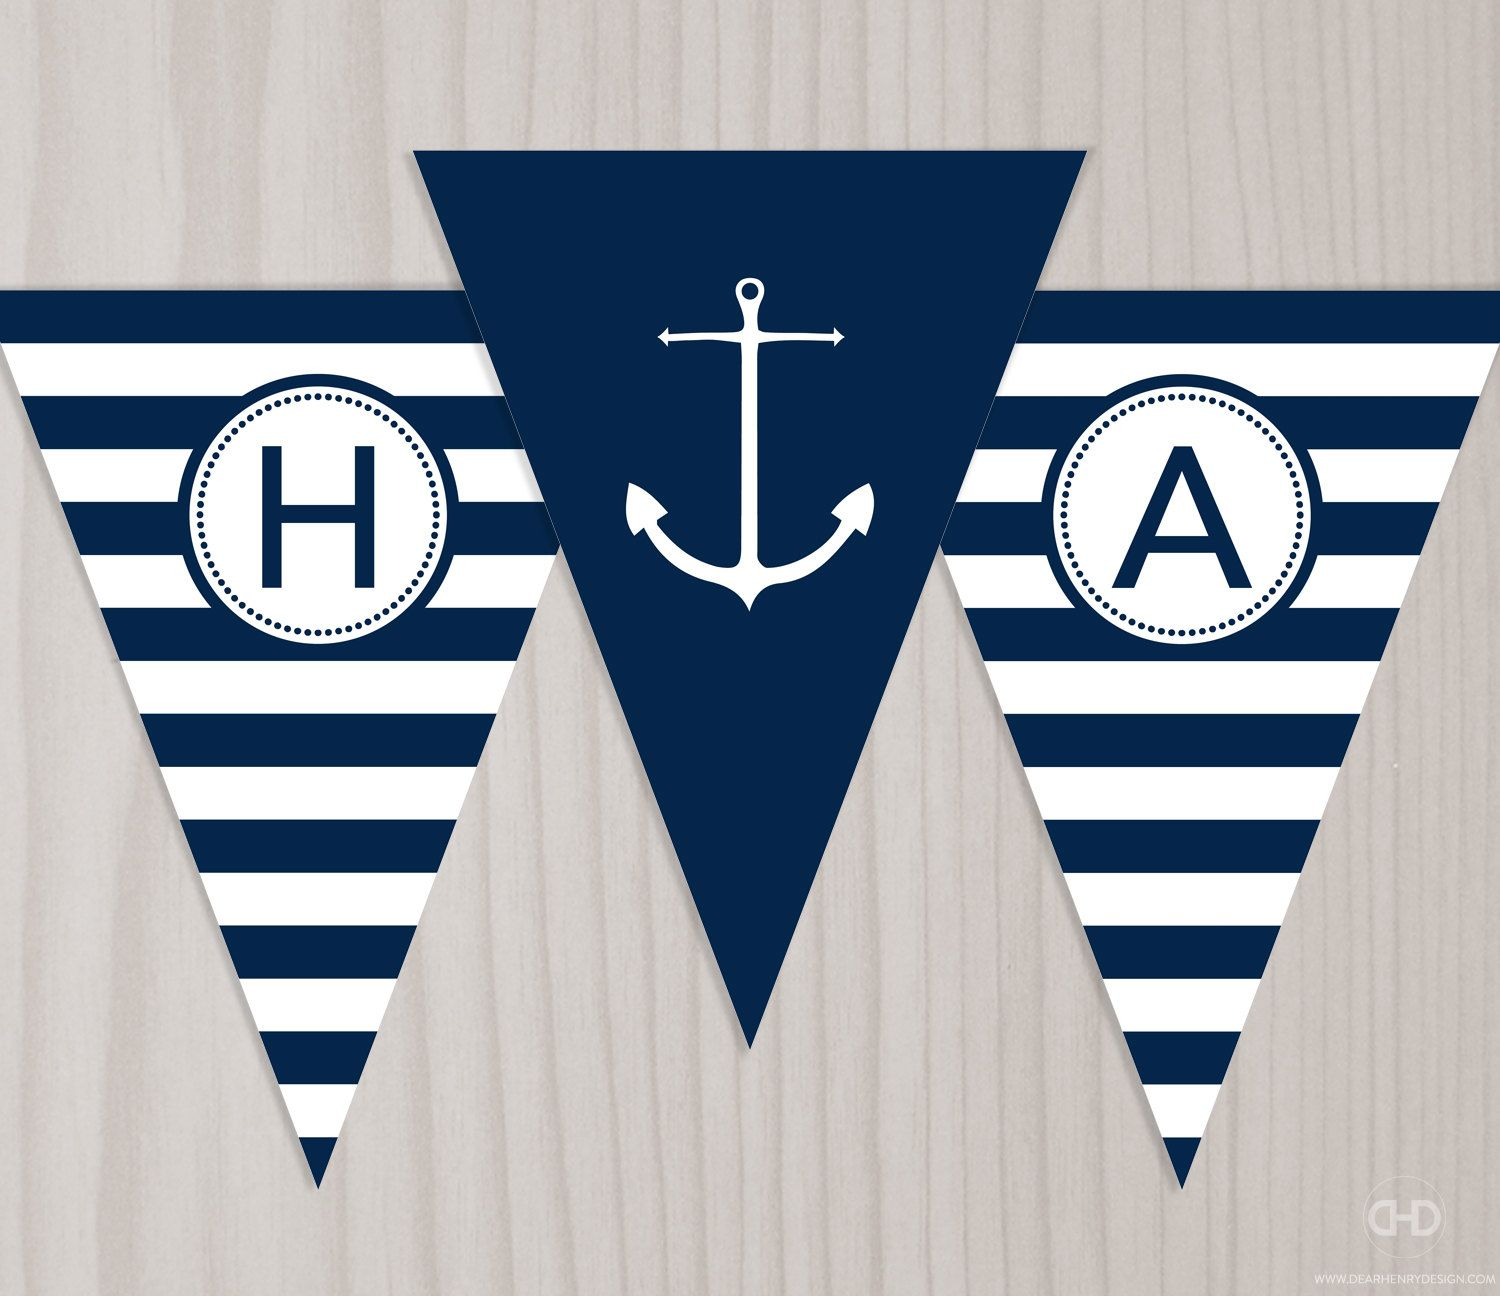 Popular items for nautical bunting on etsy banner ideas popular items for nautical bunting on etsy pronofoot35fo Images